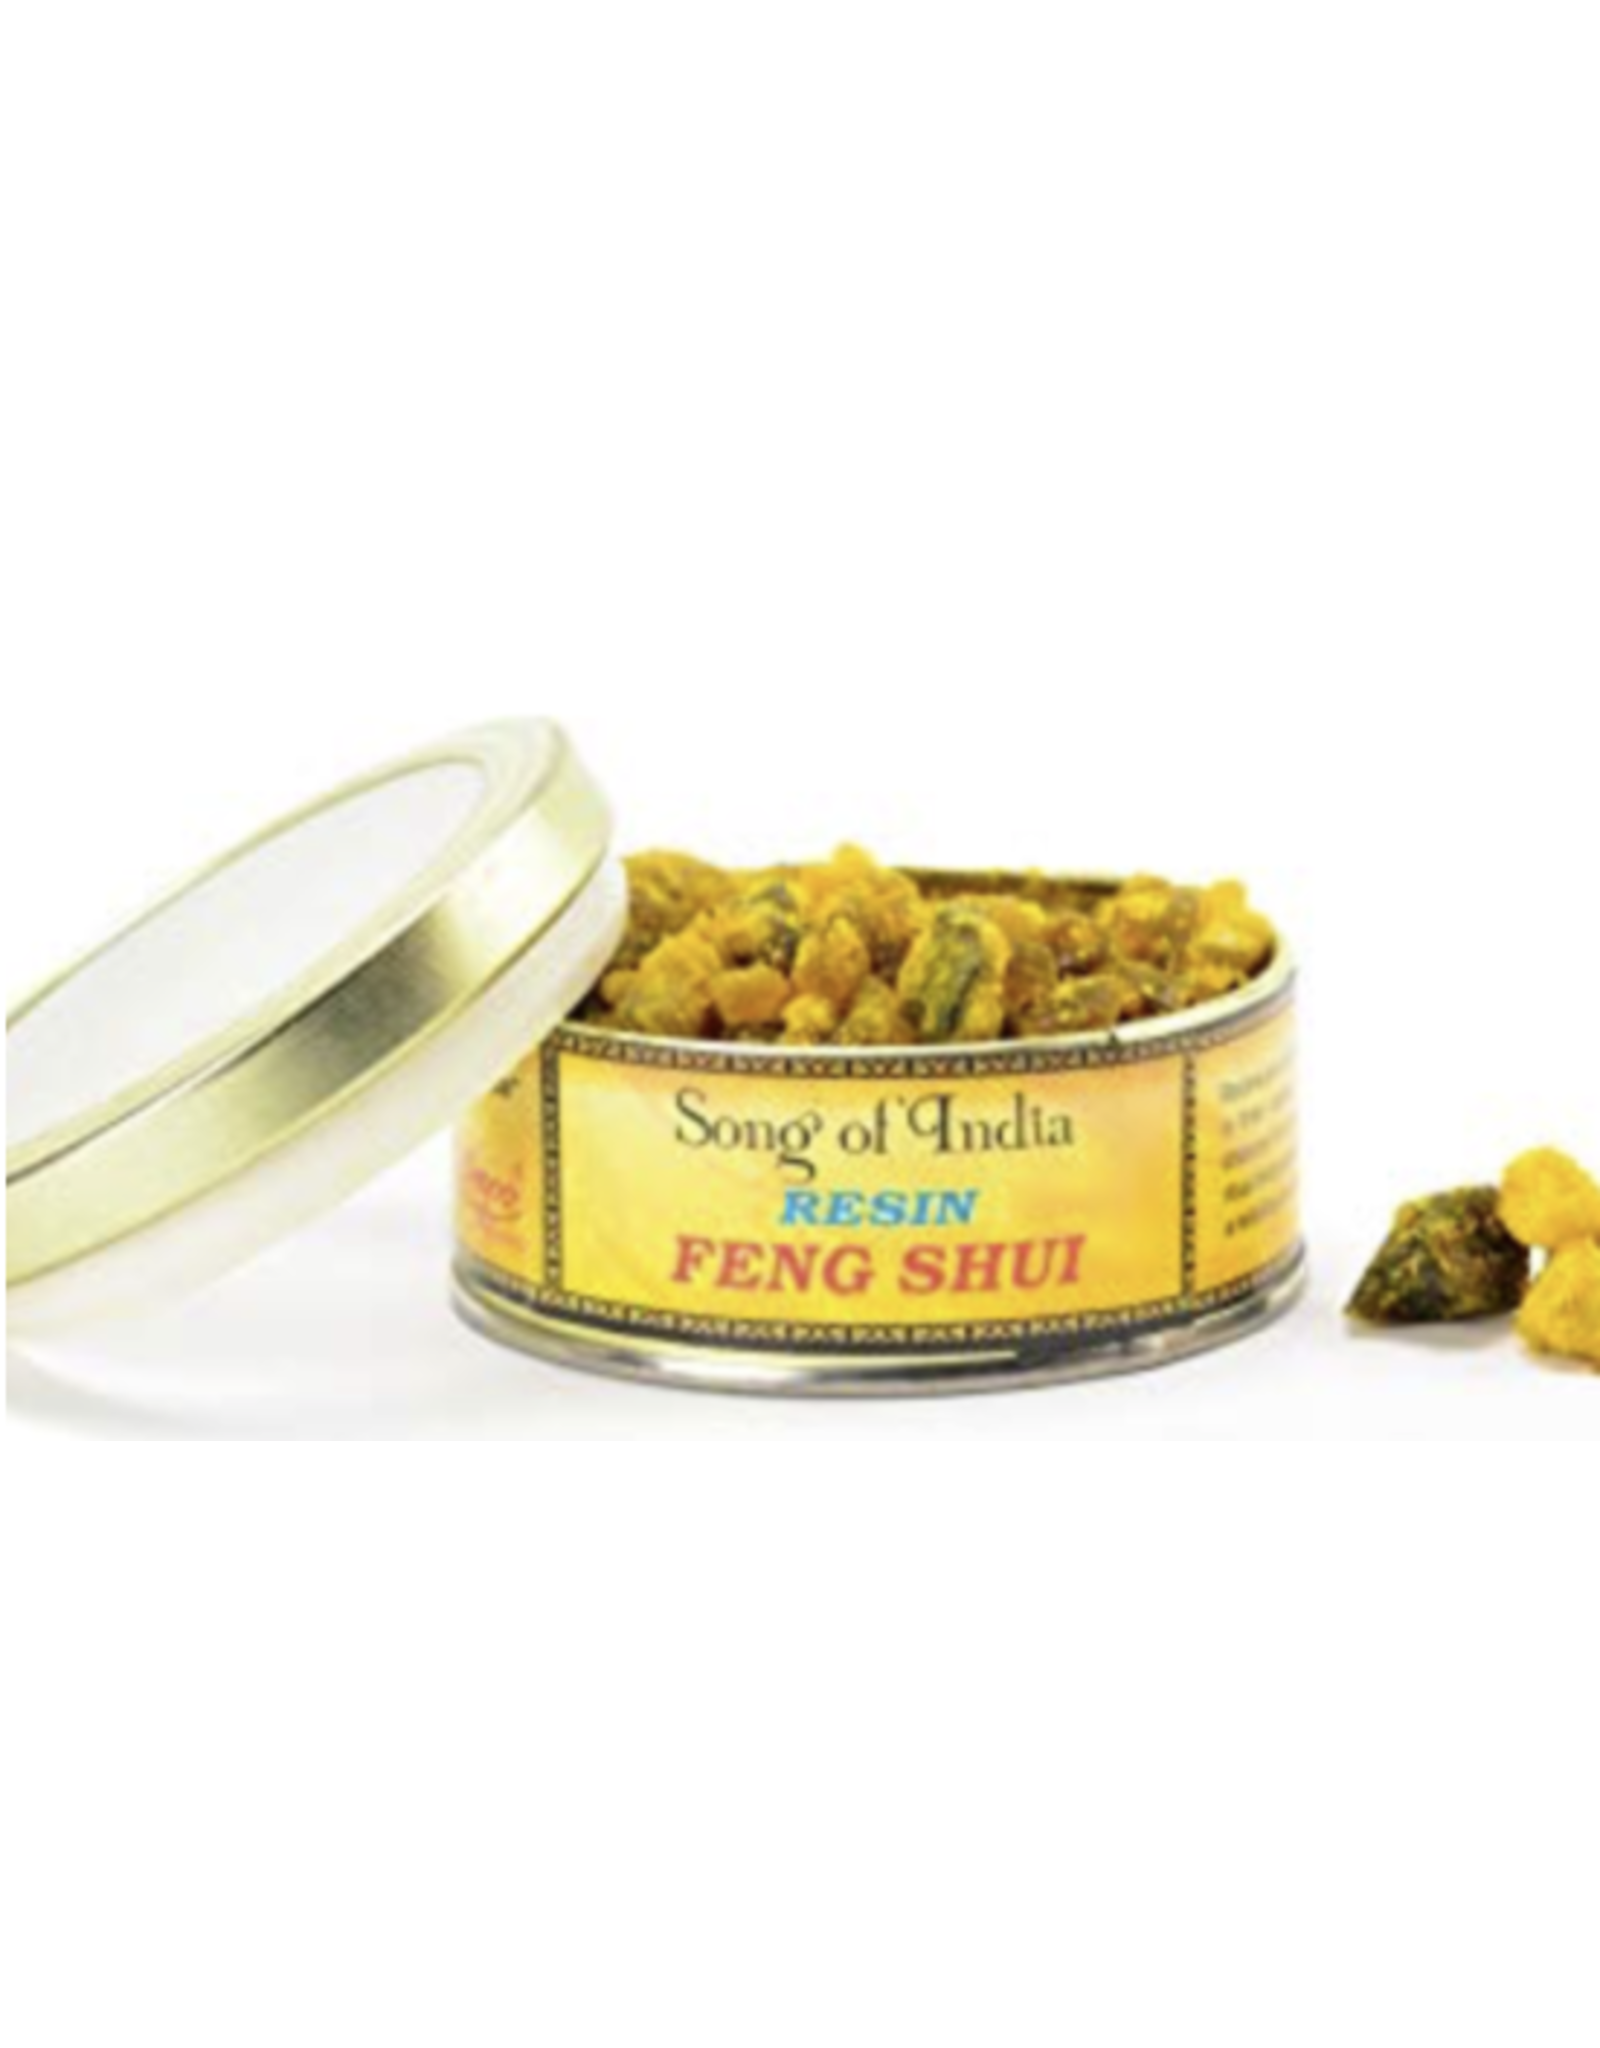 Song of India Feng Shui - Natural Resin Incense